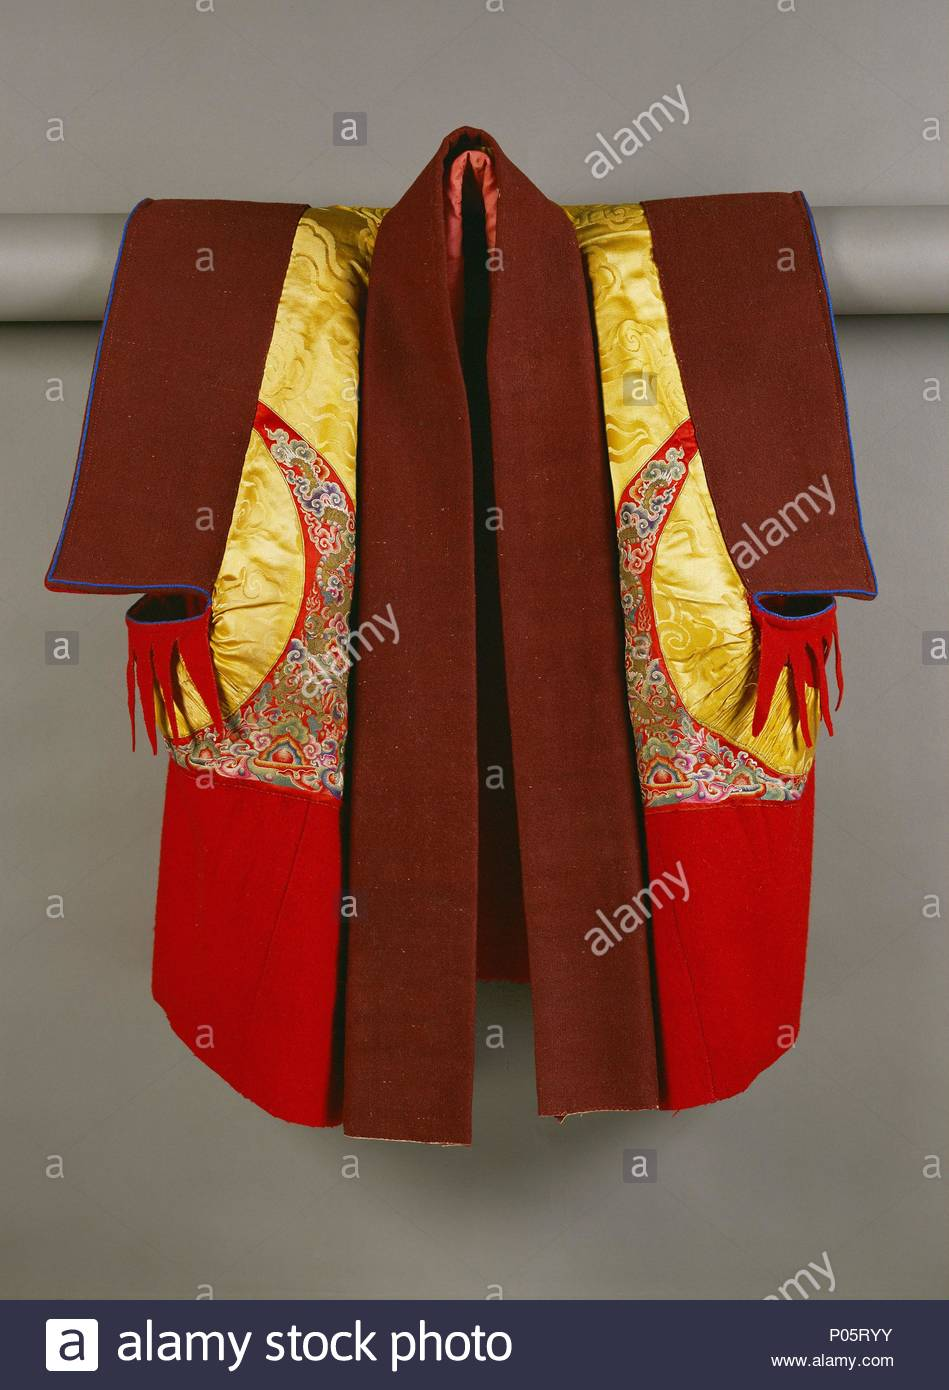 A monkïs waistcoat (Toegag) -the attire of a monk consists of a waistcoat with stitched inserts, a wrap-around and an overgarment and cloak. Location: National Museum, Paro, Bhutan. - Stock Image